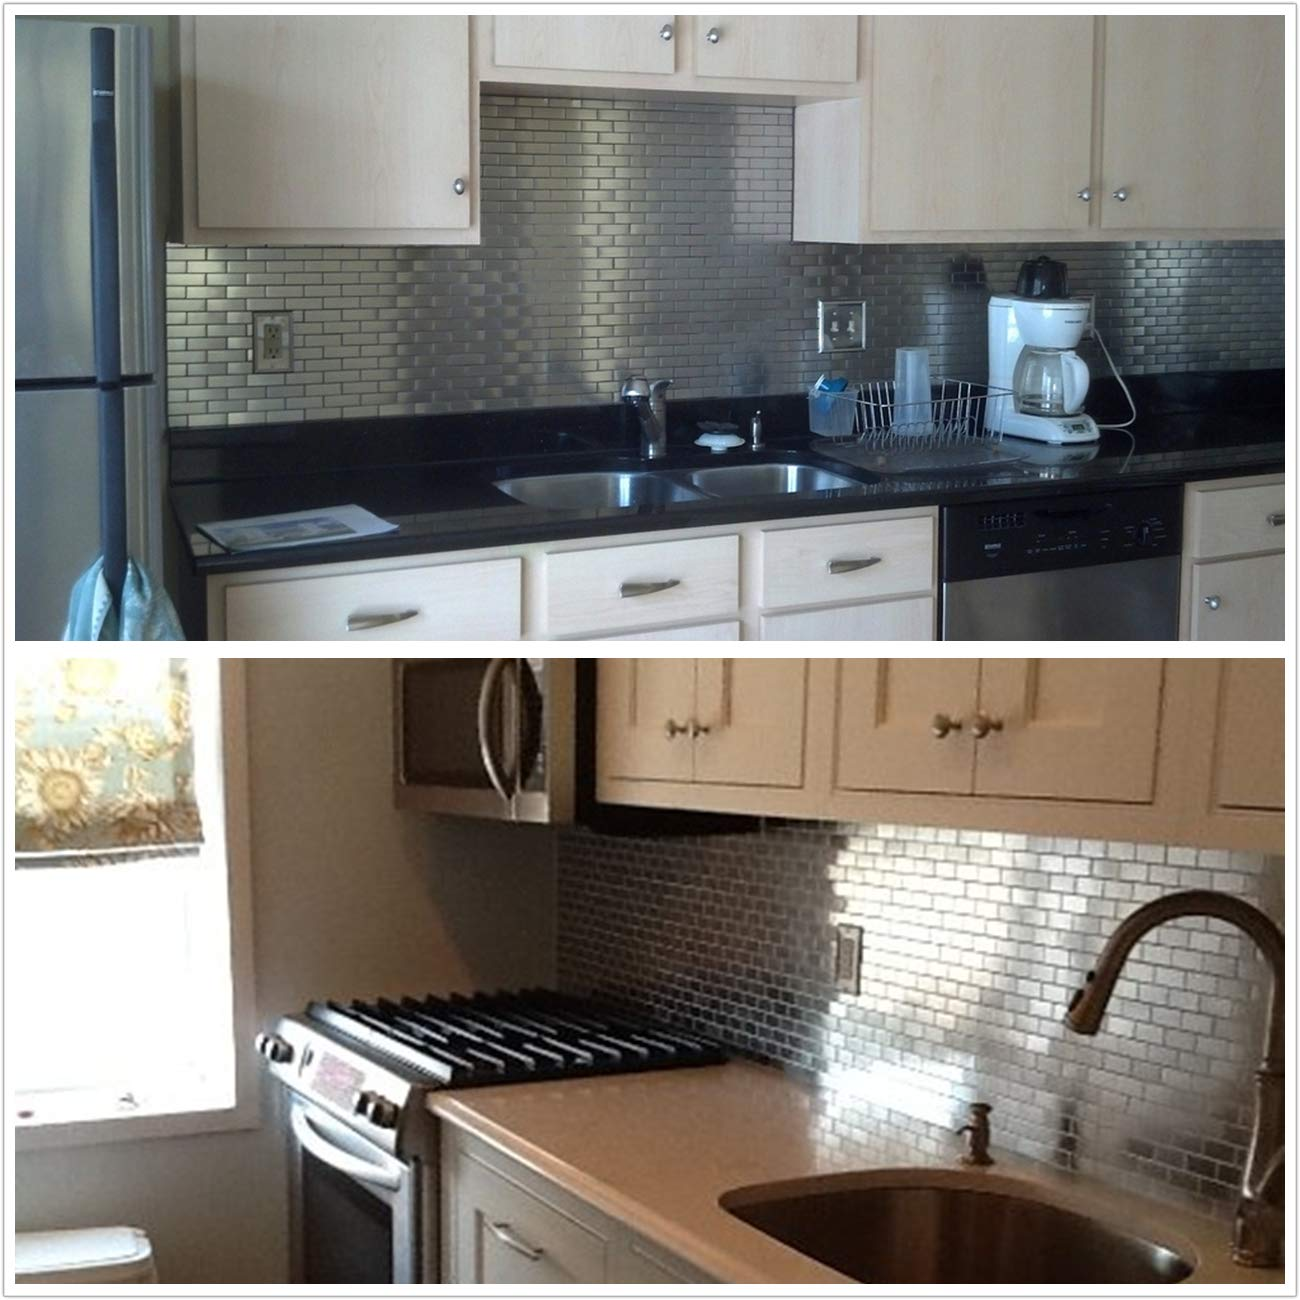 HomeyStyle Subway Stainless Steel Peel and Stick Tile Backsplash for Kitchen Bathroom Stove Self-Adhesive Metal Mosaic Tiles Wall Decor Sticker,5 Tiles x 12''x12'' by HomeyStyle (Image #6)